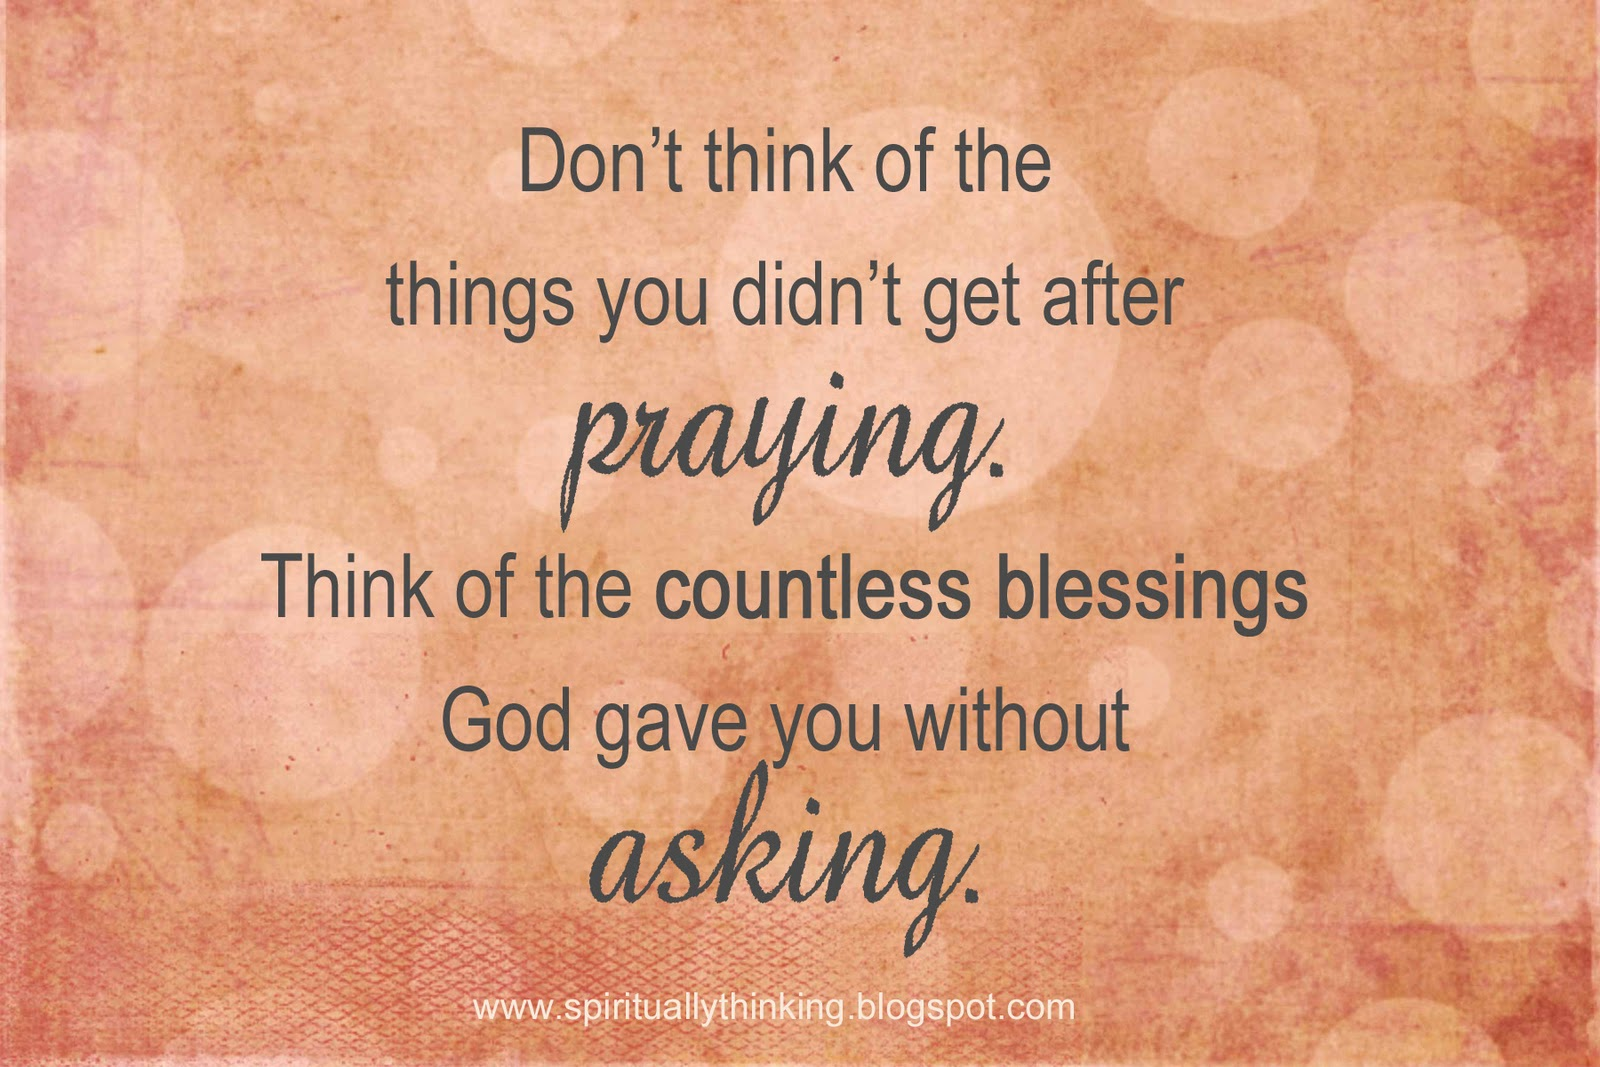 And Spiritually Speaking: Receiving Without Asking